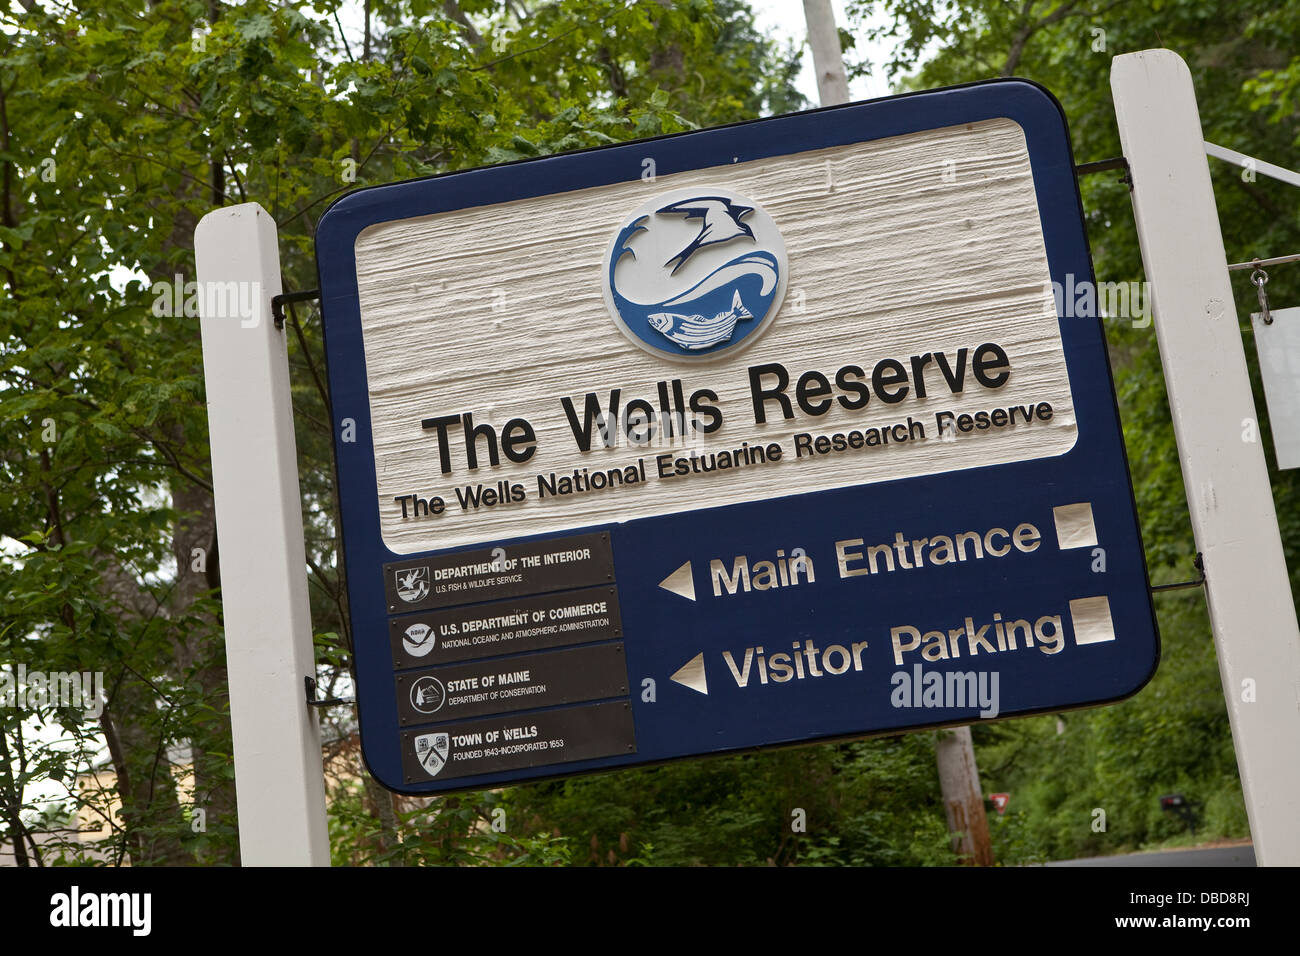 The Wells National Estuarine Research Reserve is pictured in Wells, Maine - Stock Image